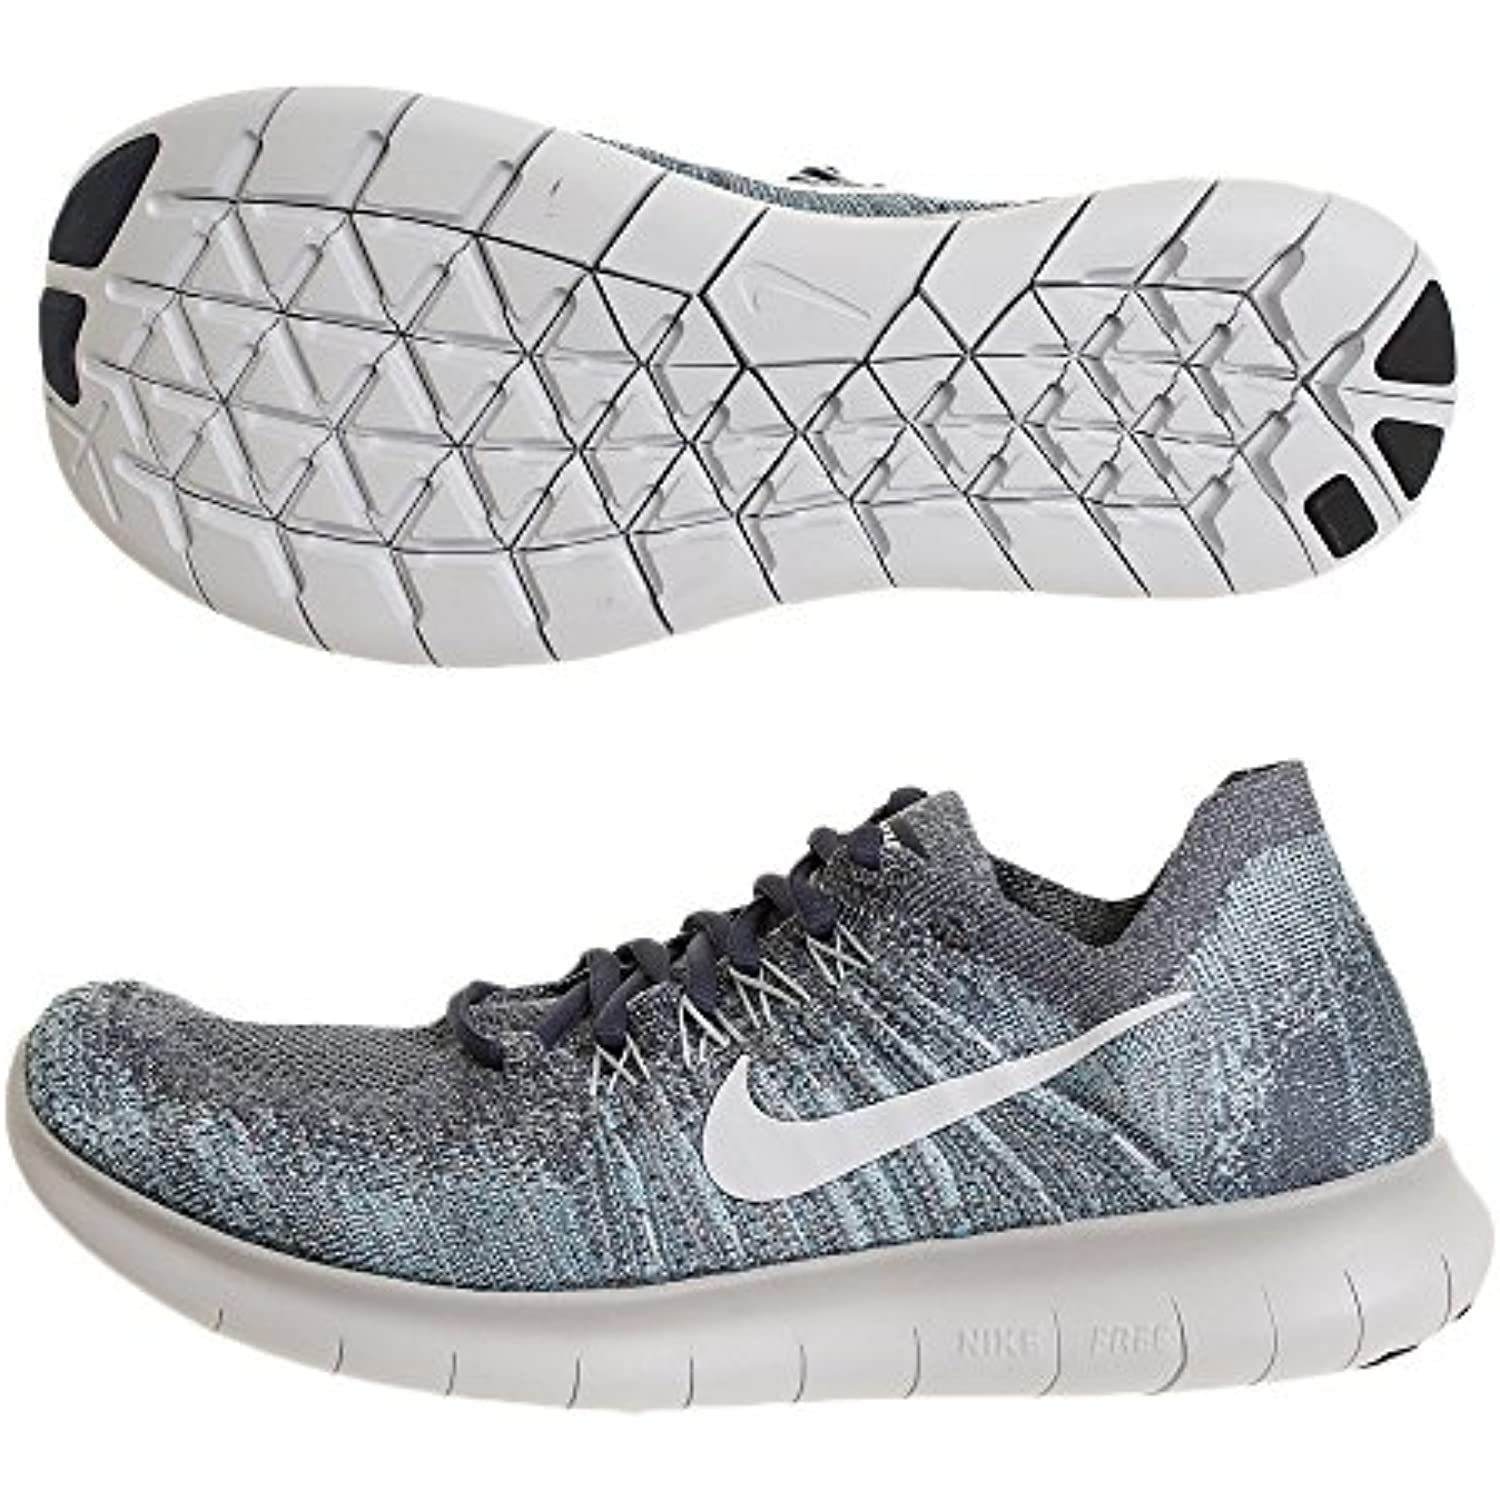 outlet store 95474 68b45 NIKE Free RN Flyknit 2017, Chaussures de Running Homme Homme Homme  B0763R372M - dbe9cd